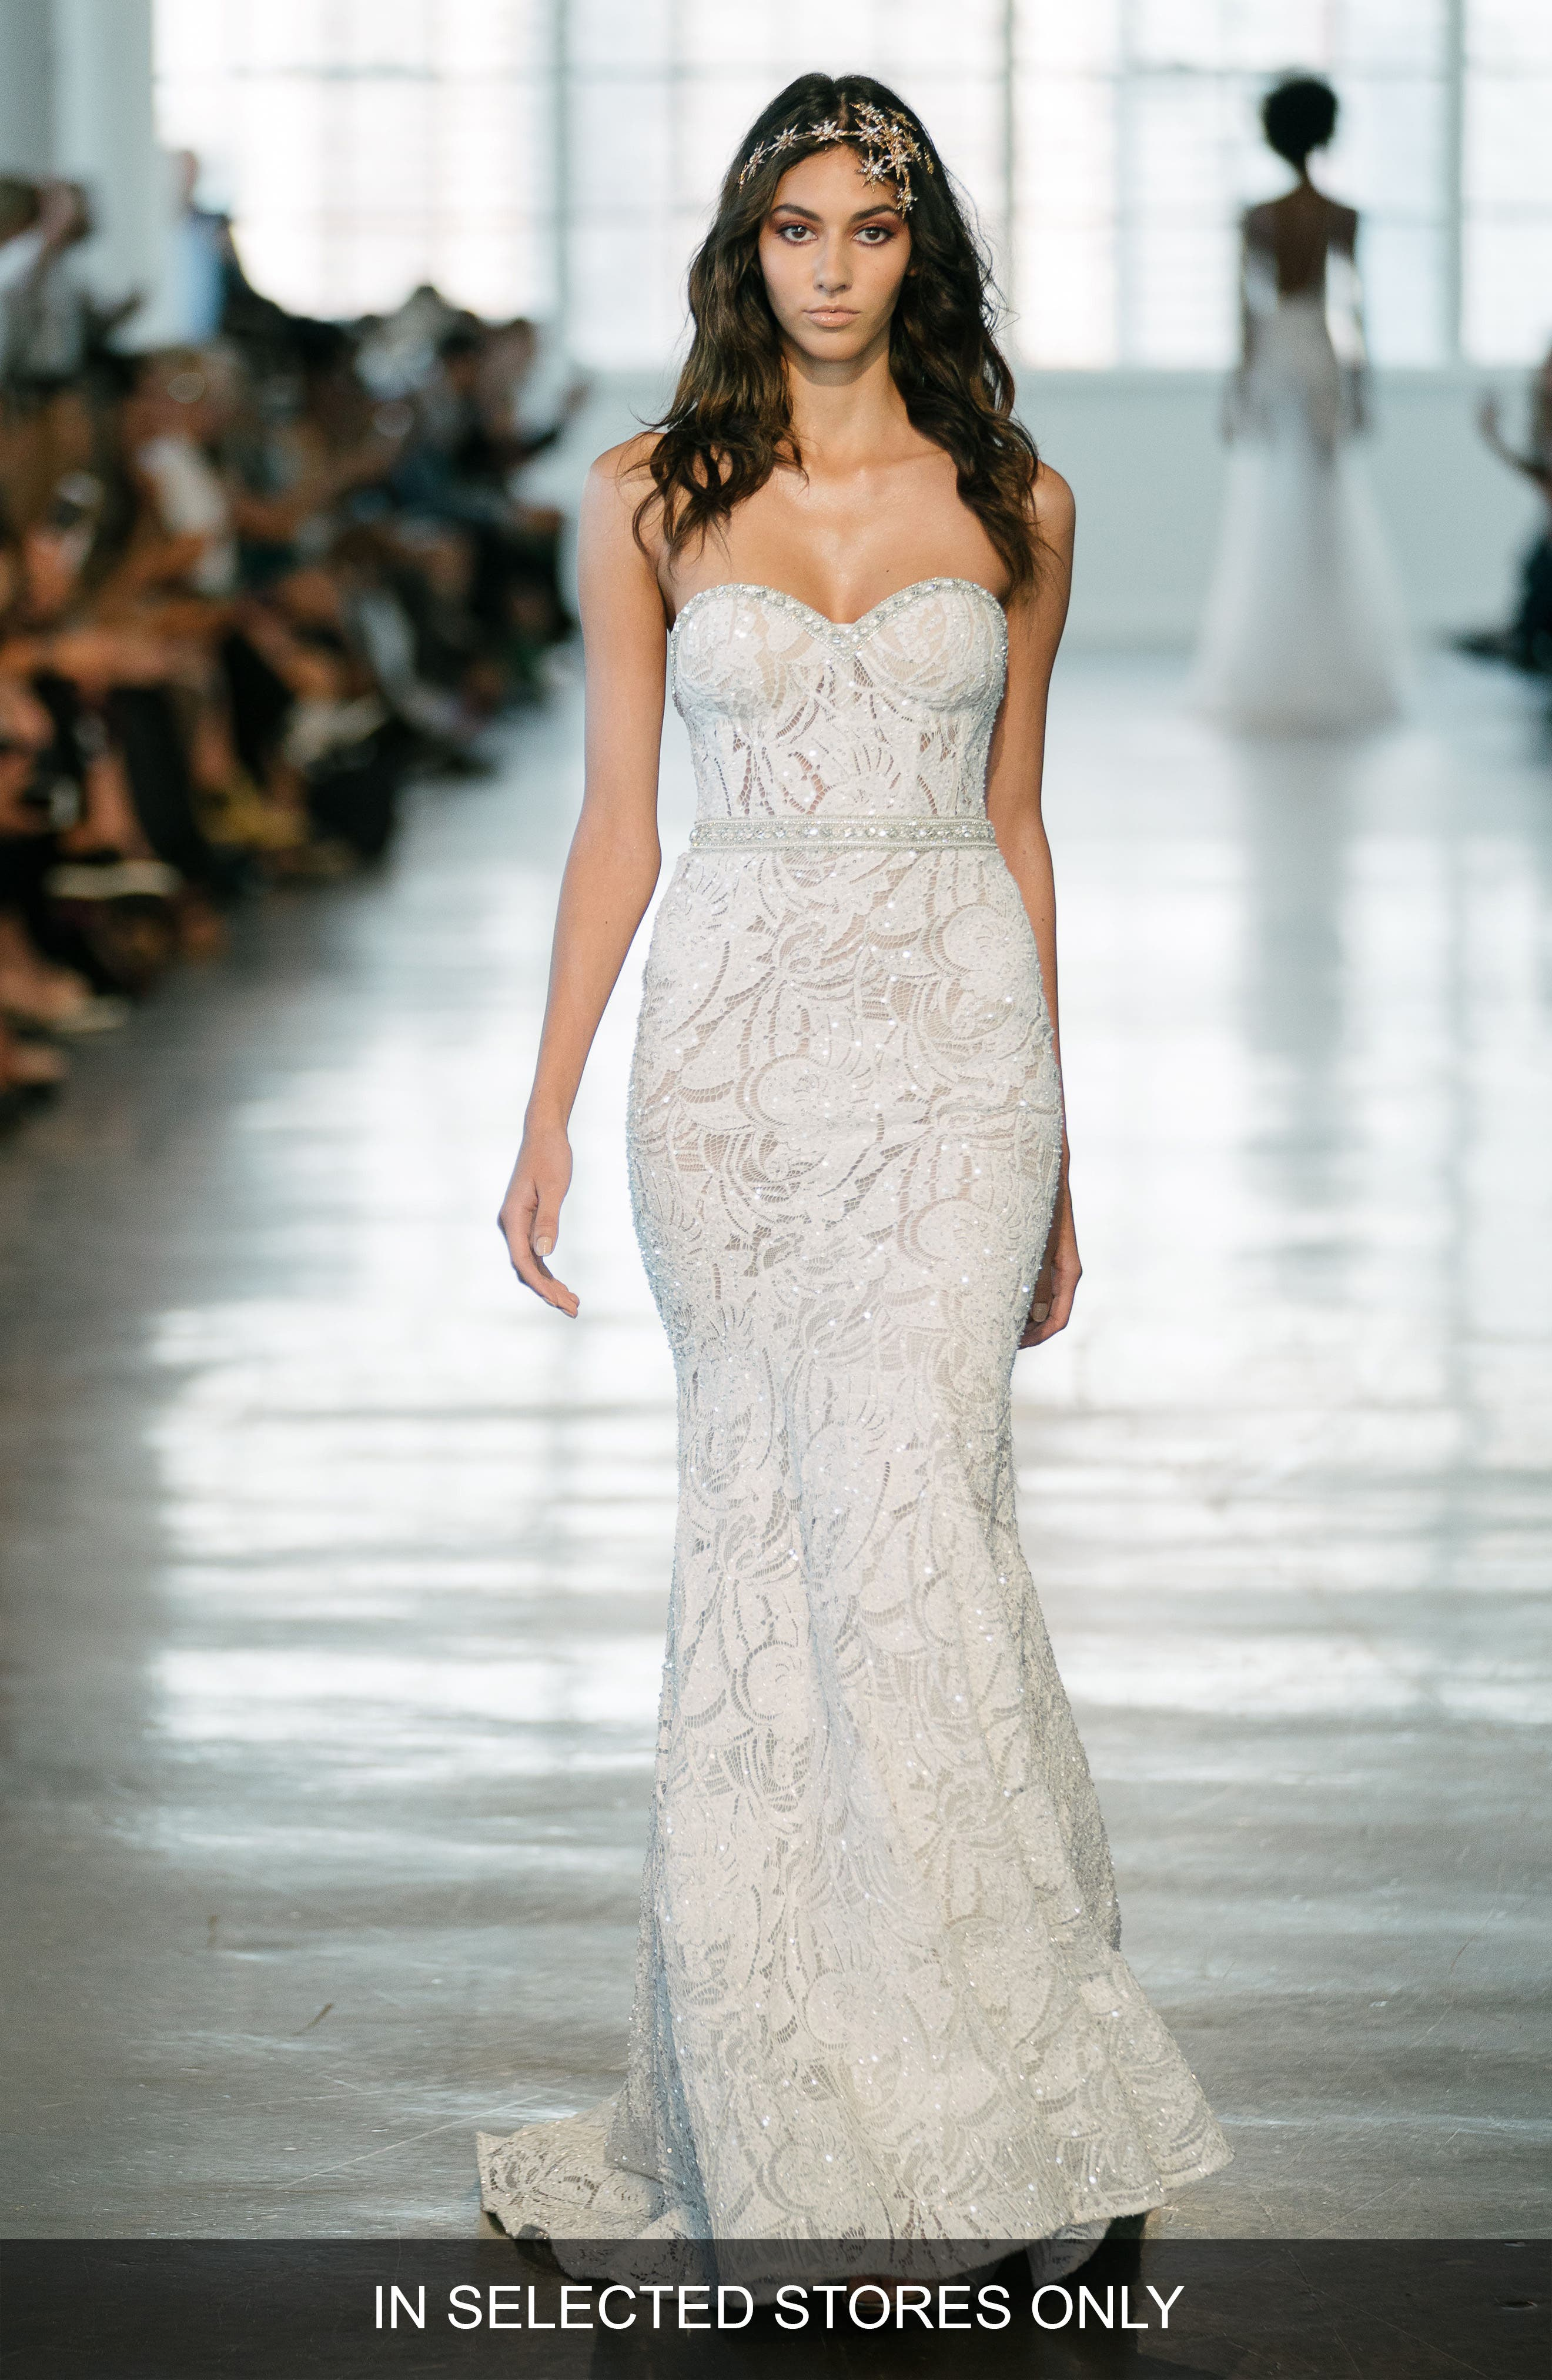 BERTA Crystal Embellished Strapless Lace Trumpet Gown in Ivory